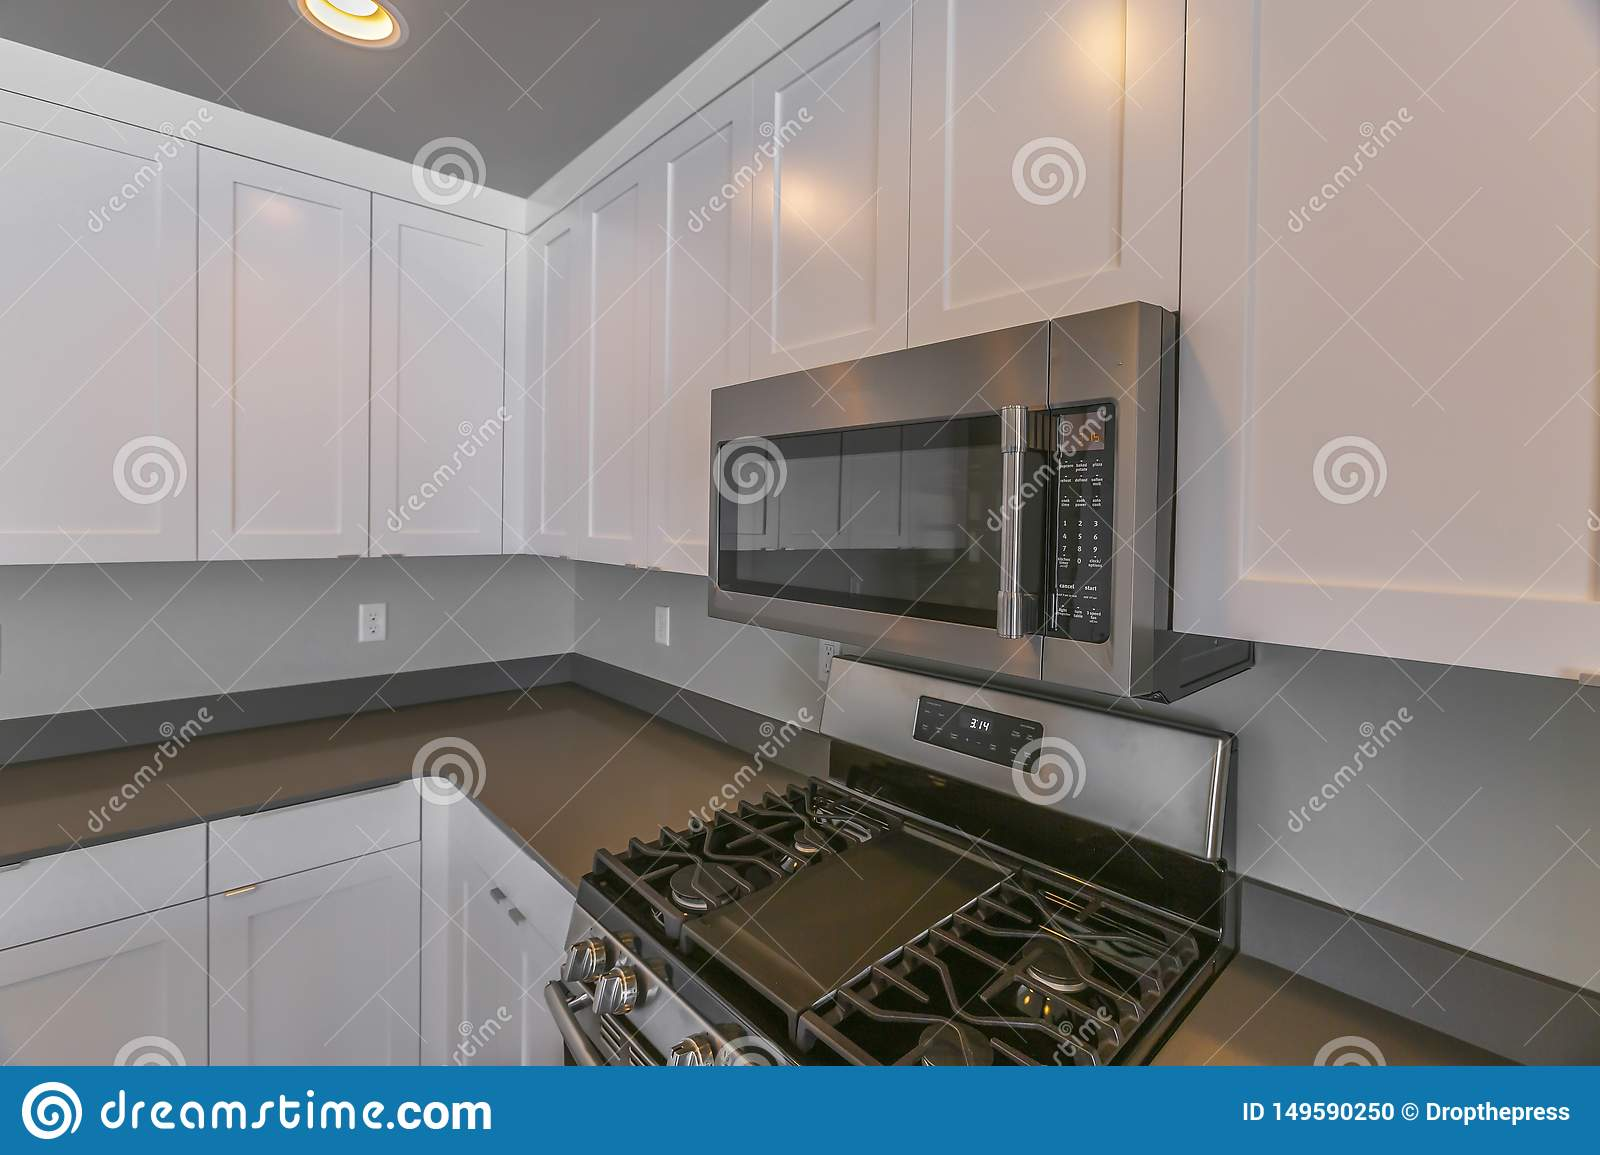 Interior Of A Modern Kitchen With Wooden Cabinets And Round Ceiling Lights Stock Photo Image Of Interior Oven 149590250